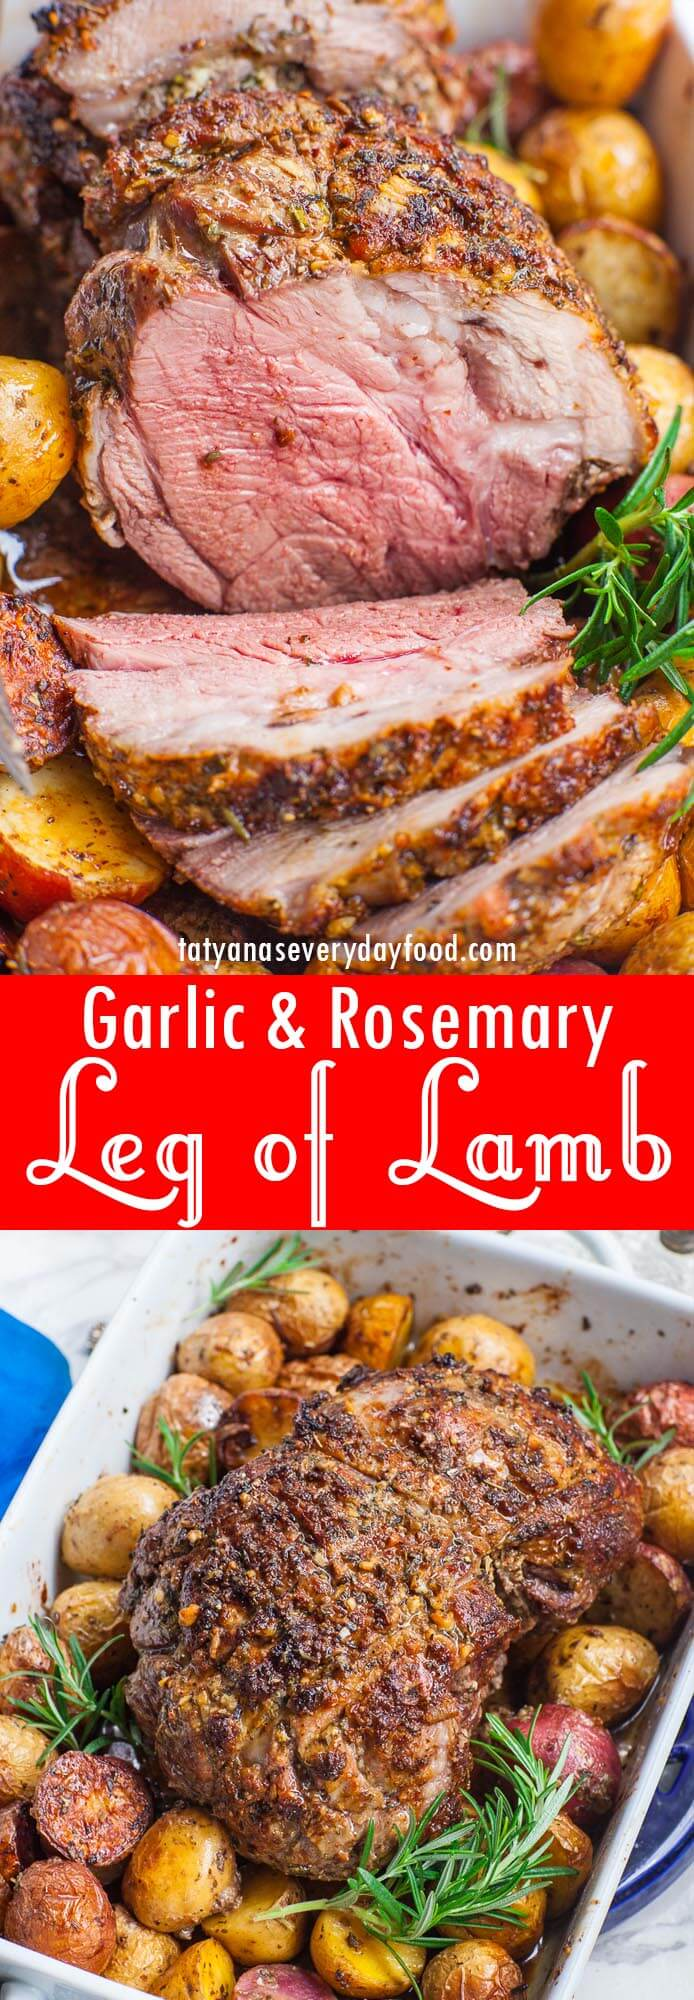 Roasted Leg of Lamb video recipe